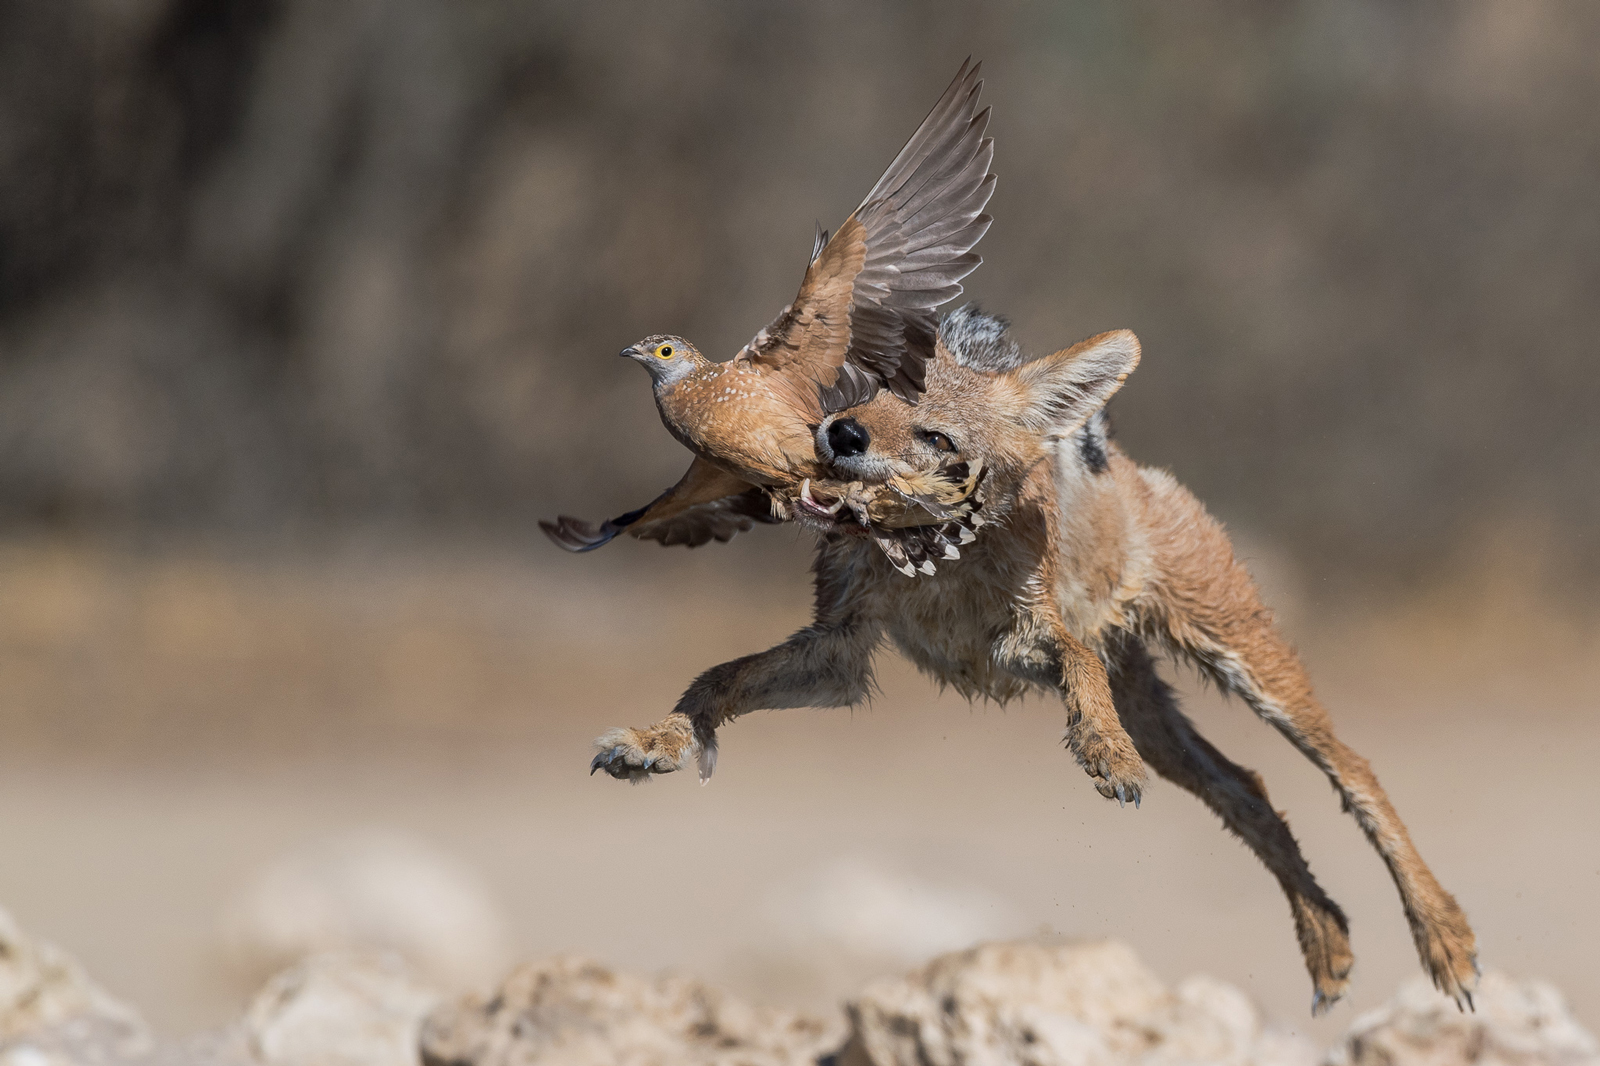 """He who adapts best, wins!"" in Kgalagadi Transfrontier Park, South Africa/Botswana ©Johan Mocke"